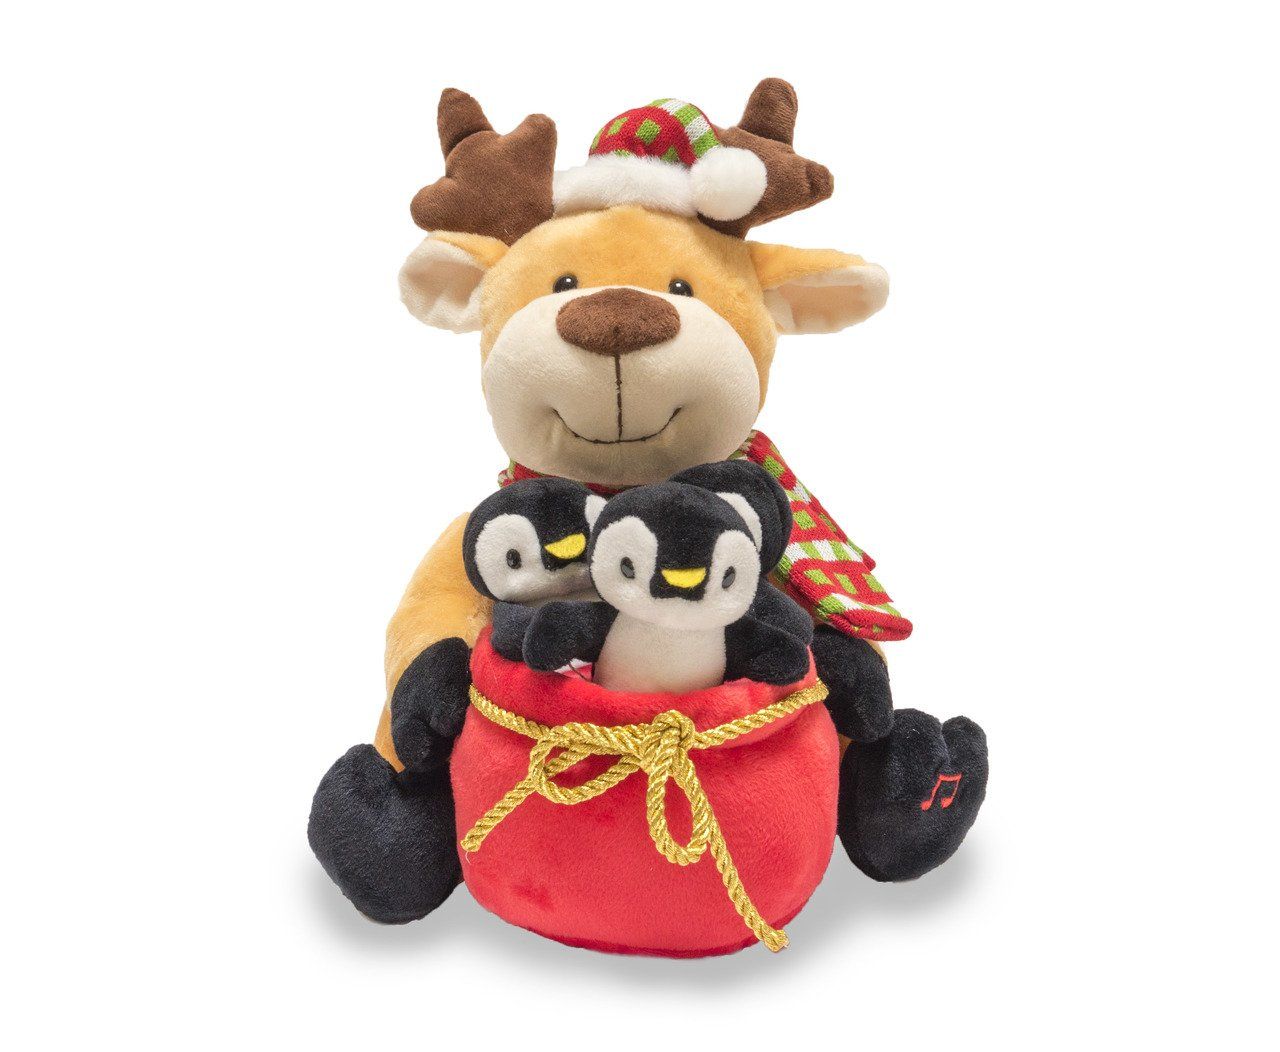 Cuddle Barn Christmas Animated Singing Dancing Light Up Rudy The Jingles